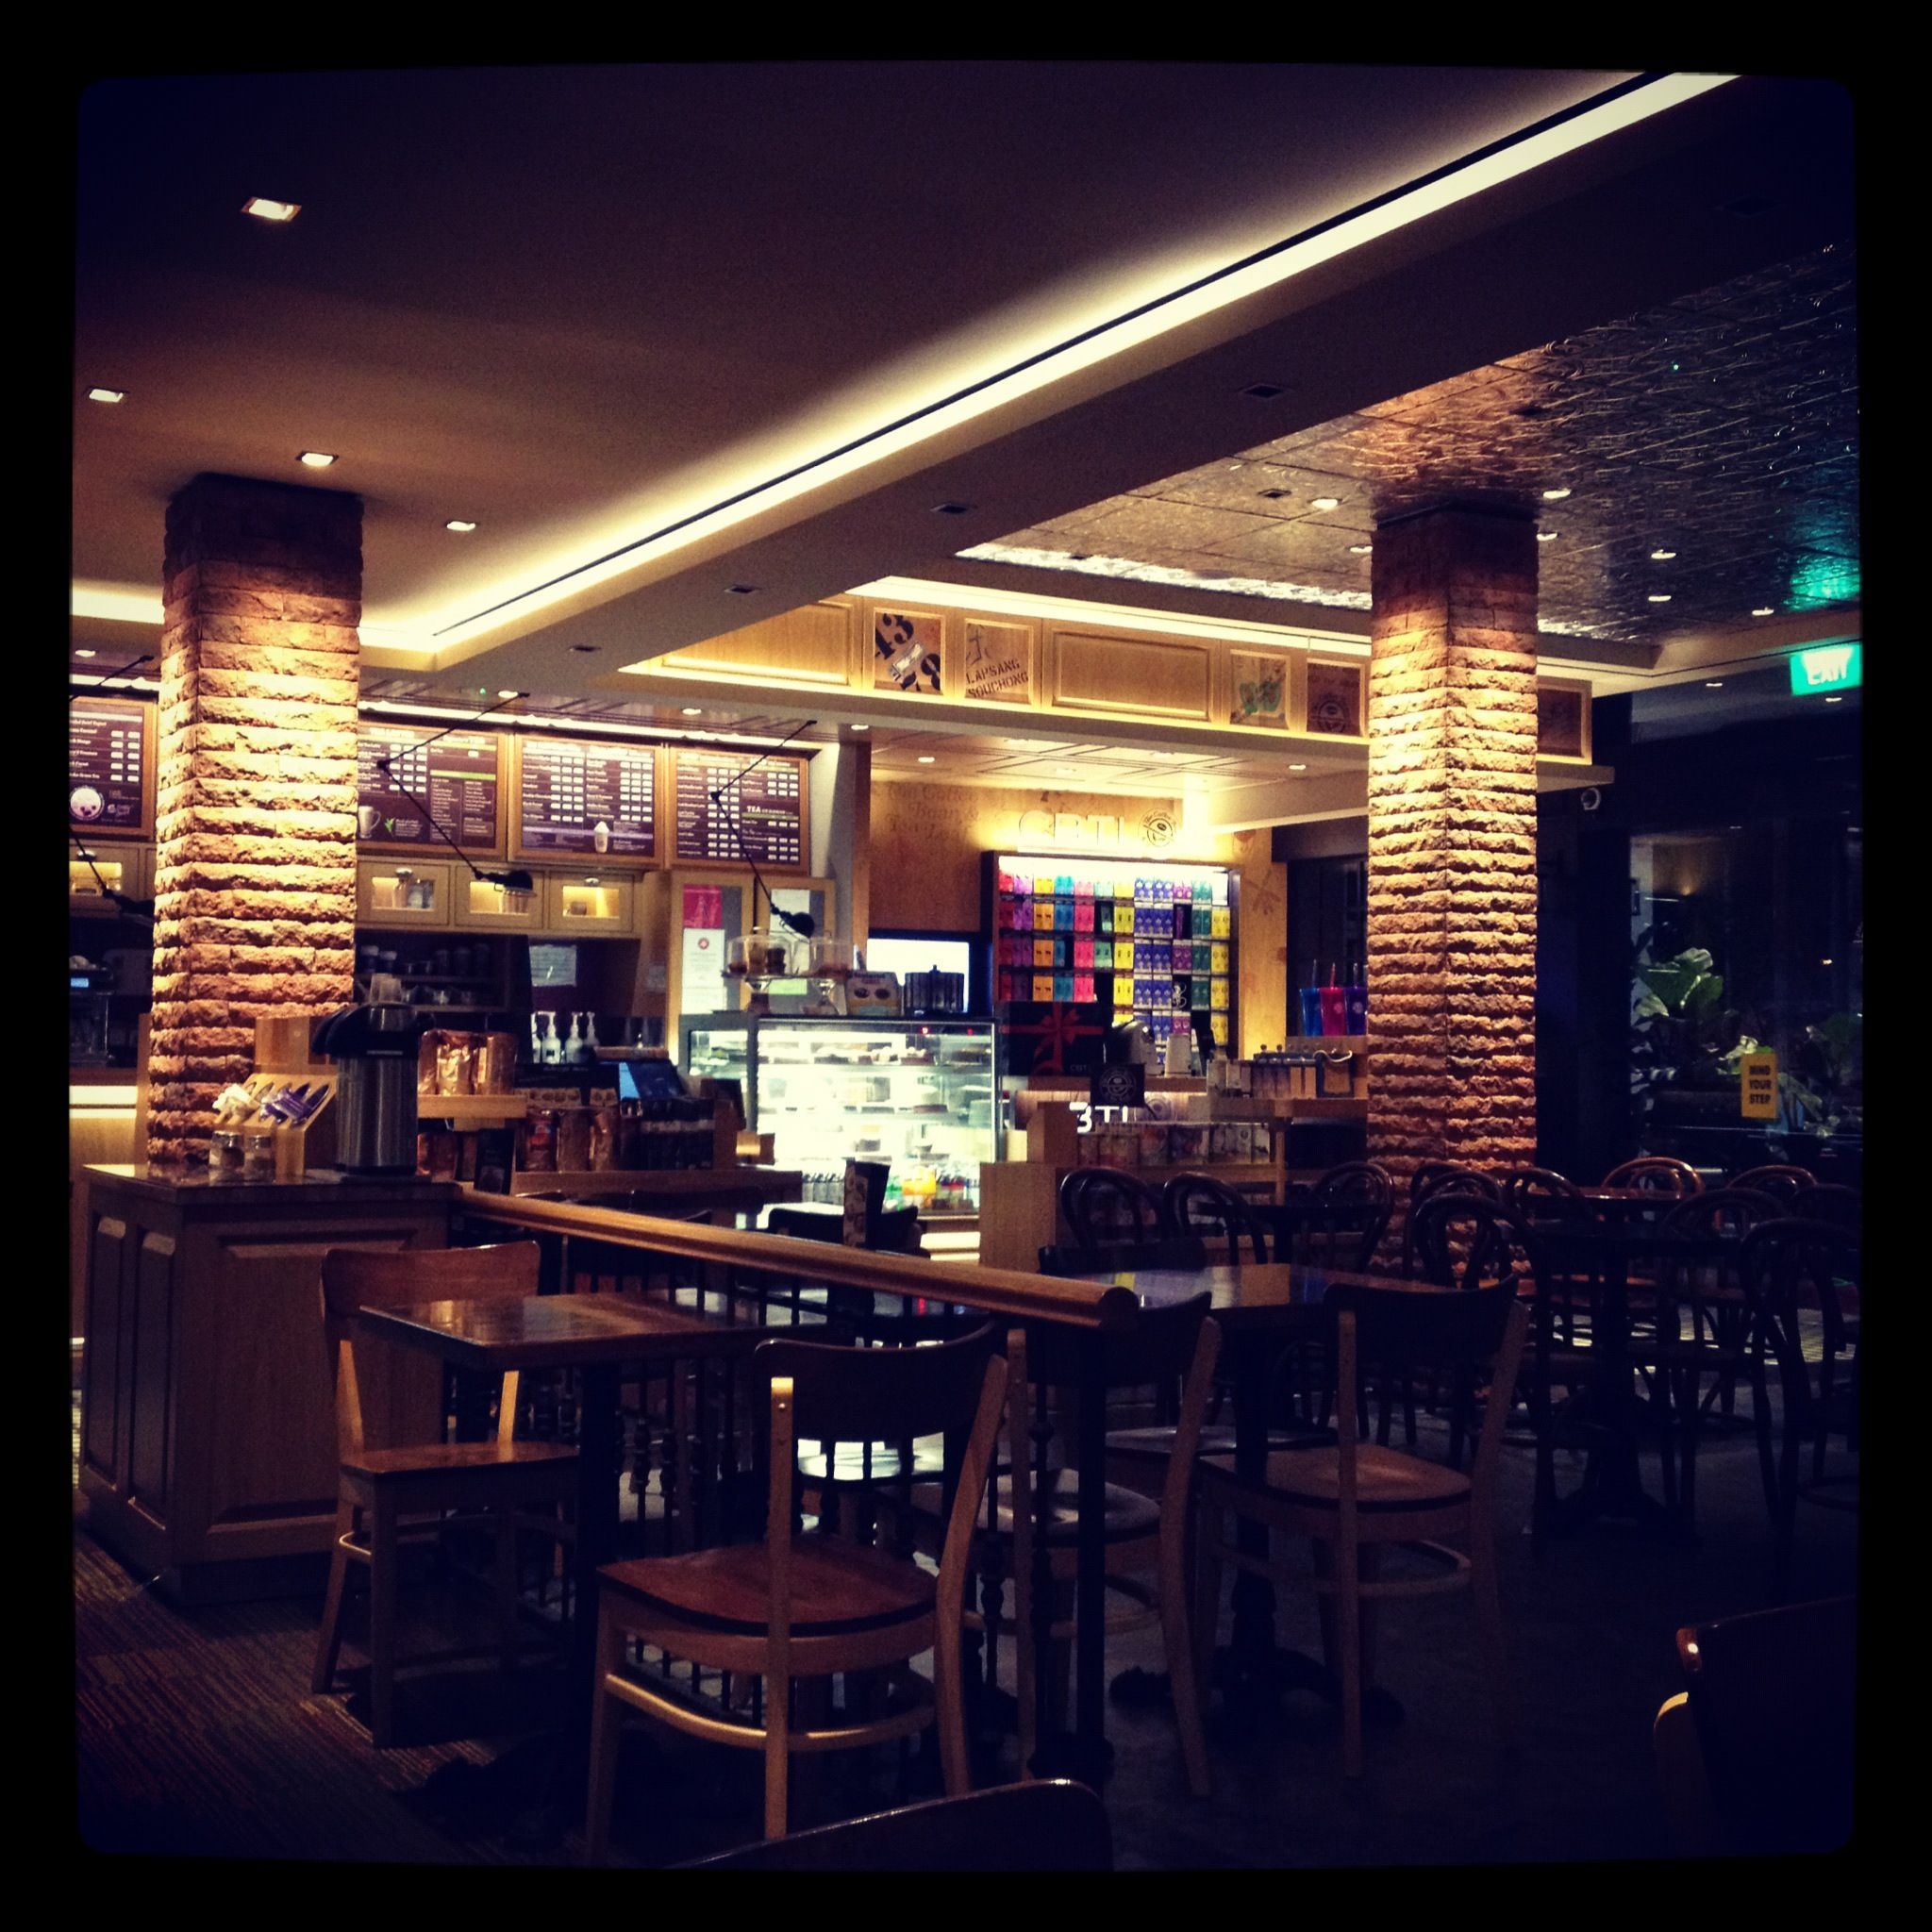 Coffee Bean at Holland V on a beautiful and tranquil night.